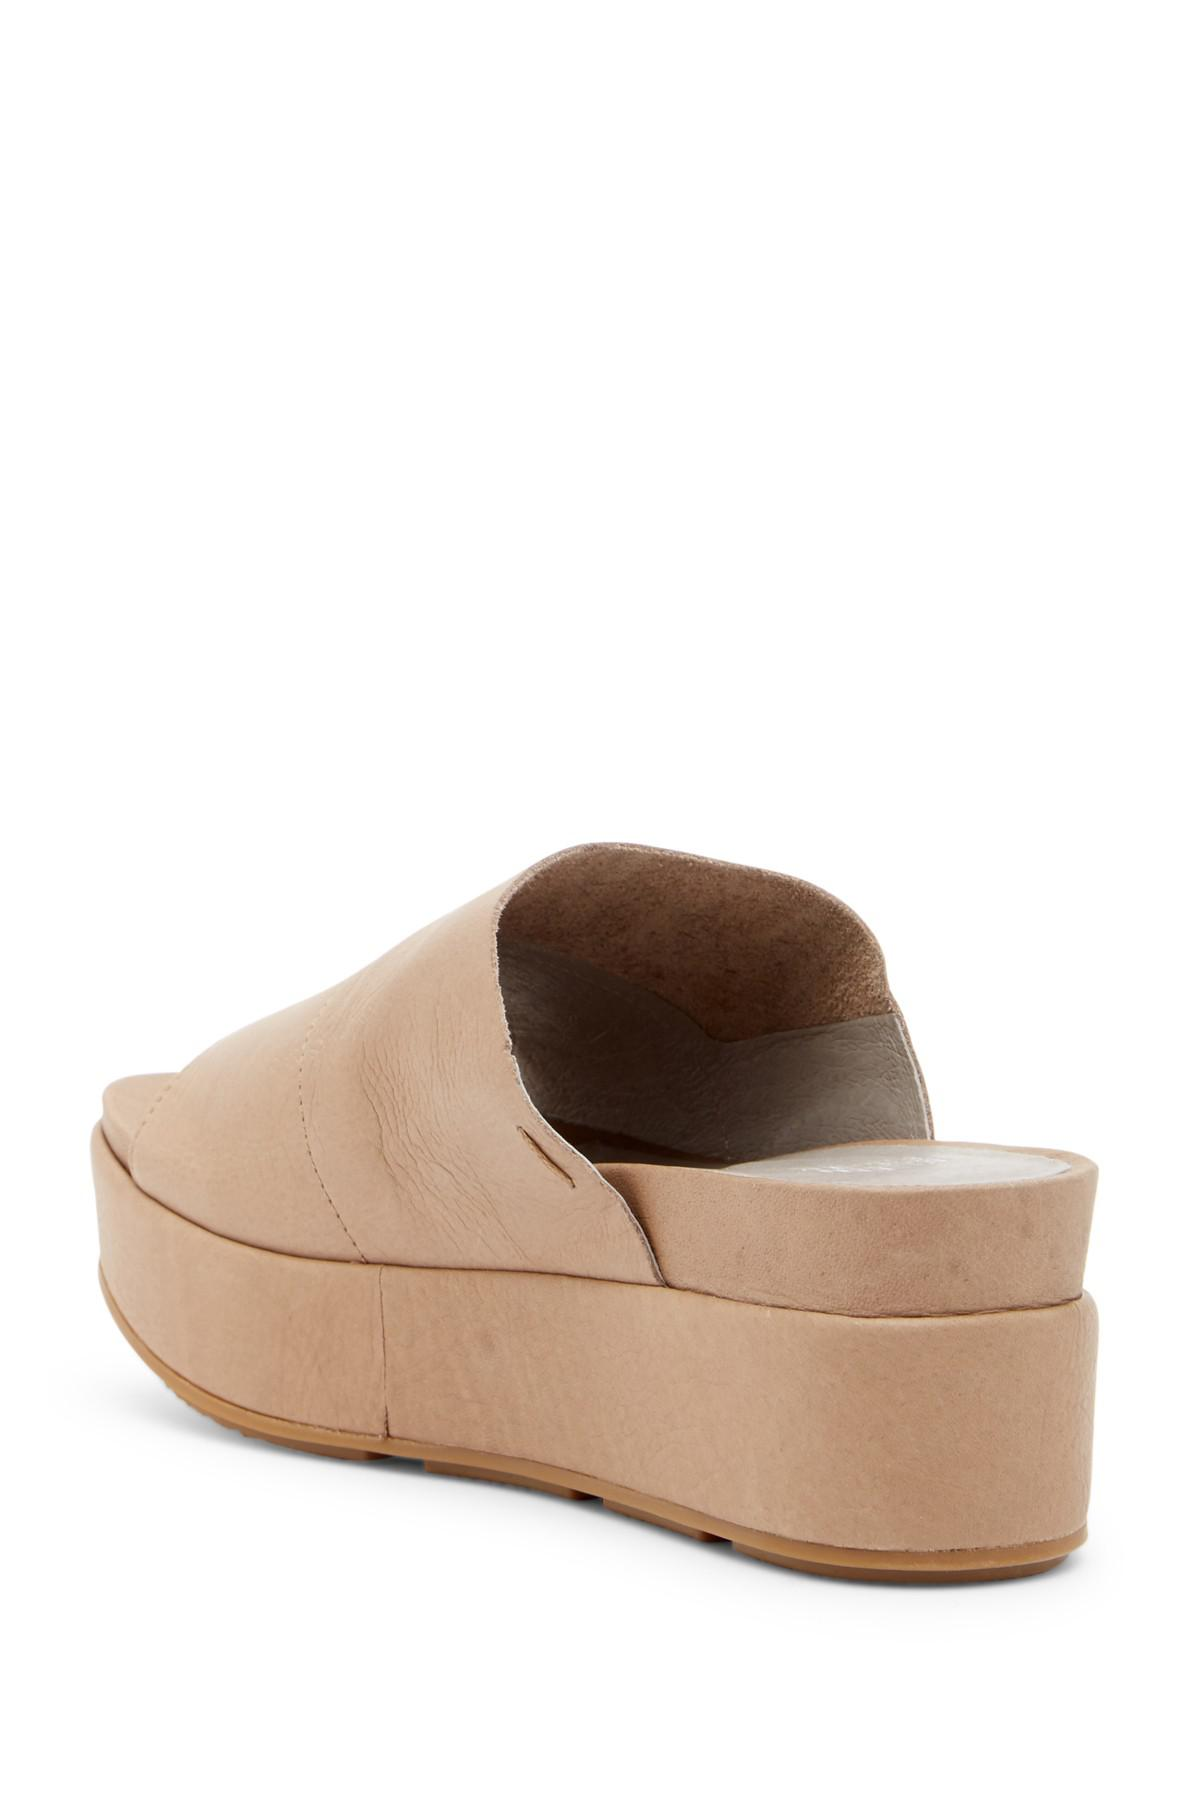 0b62649643c9 Gallery. Previously sold at  Nordstrom Rack · Women s Eileen Fisher Platform